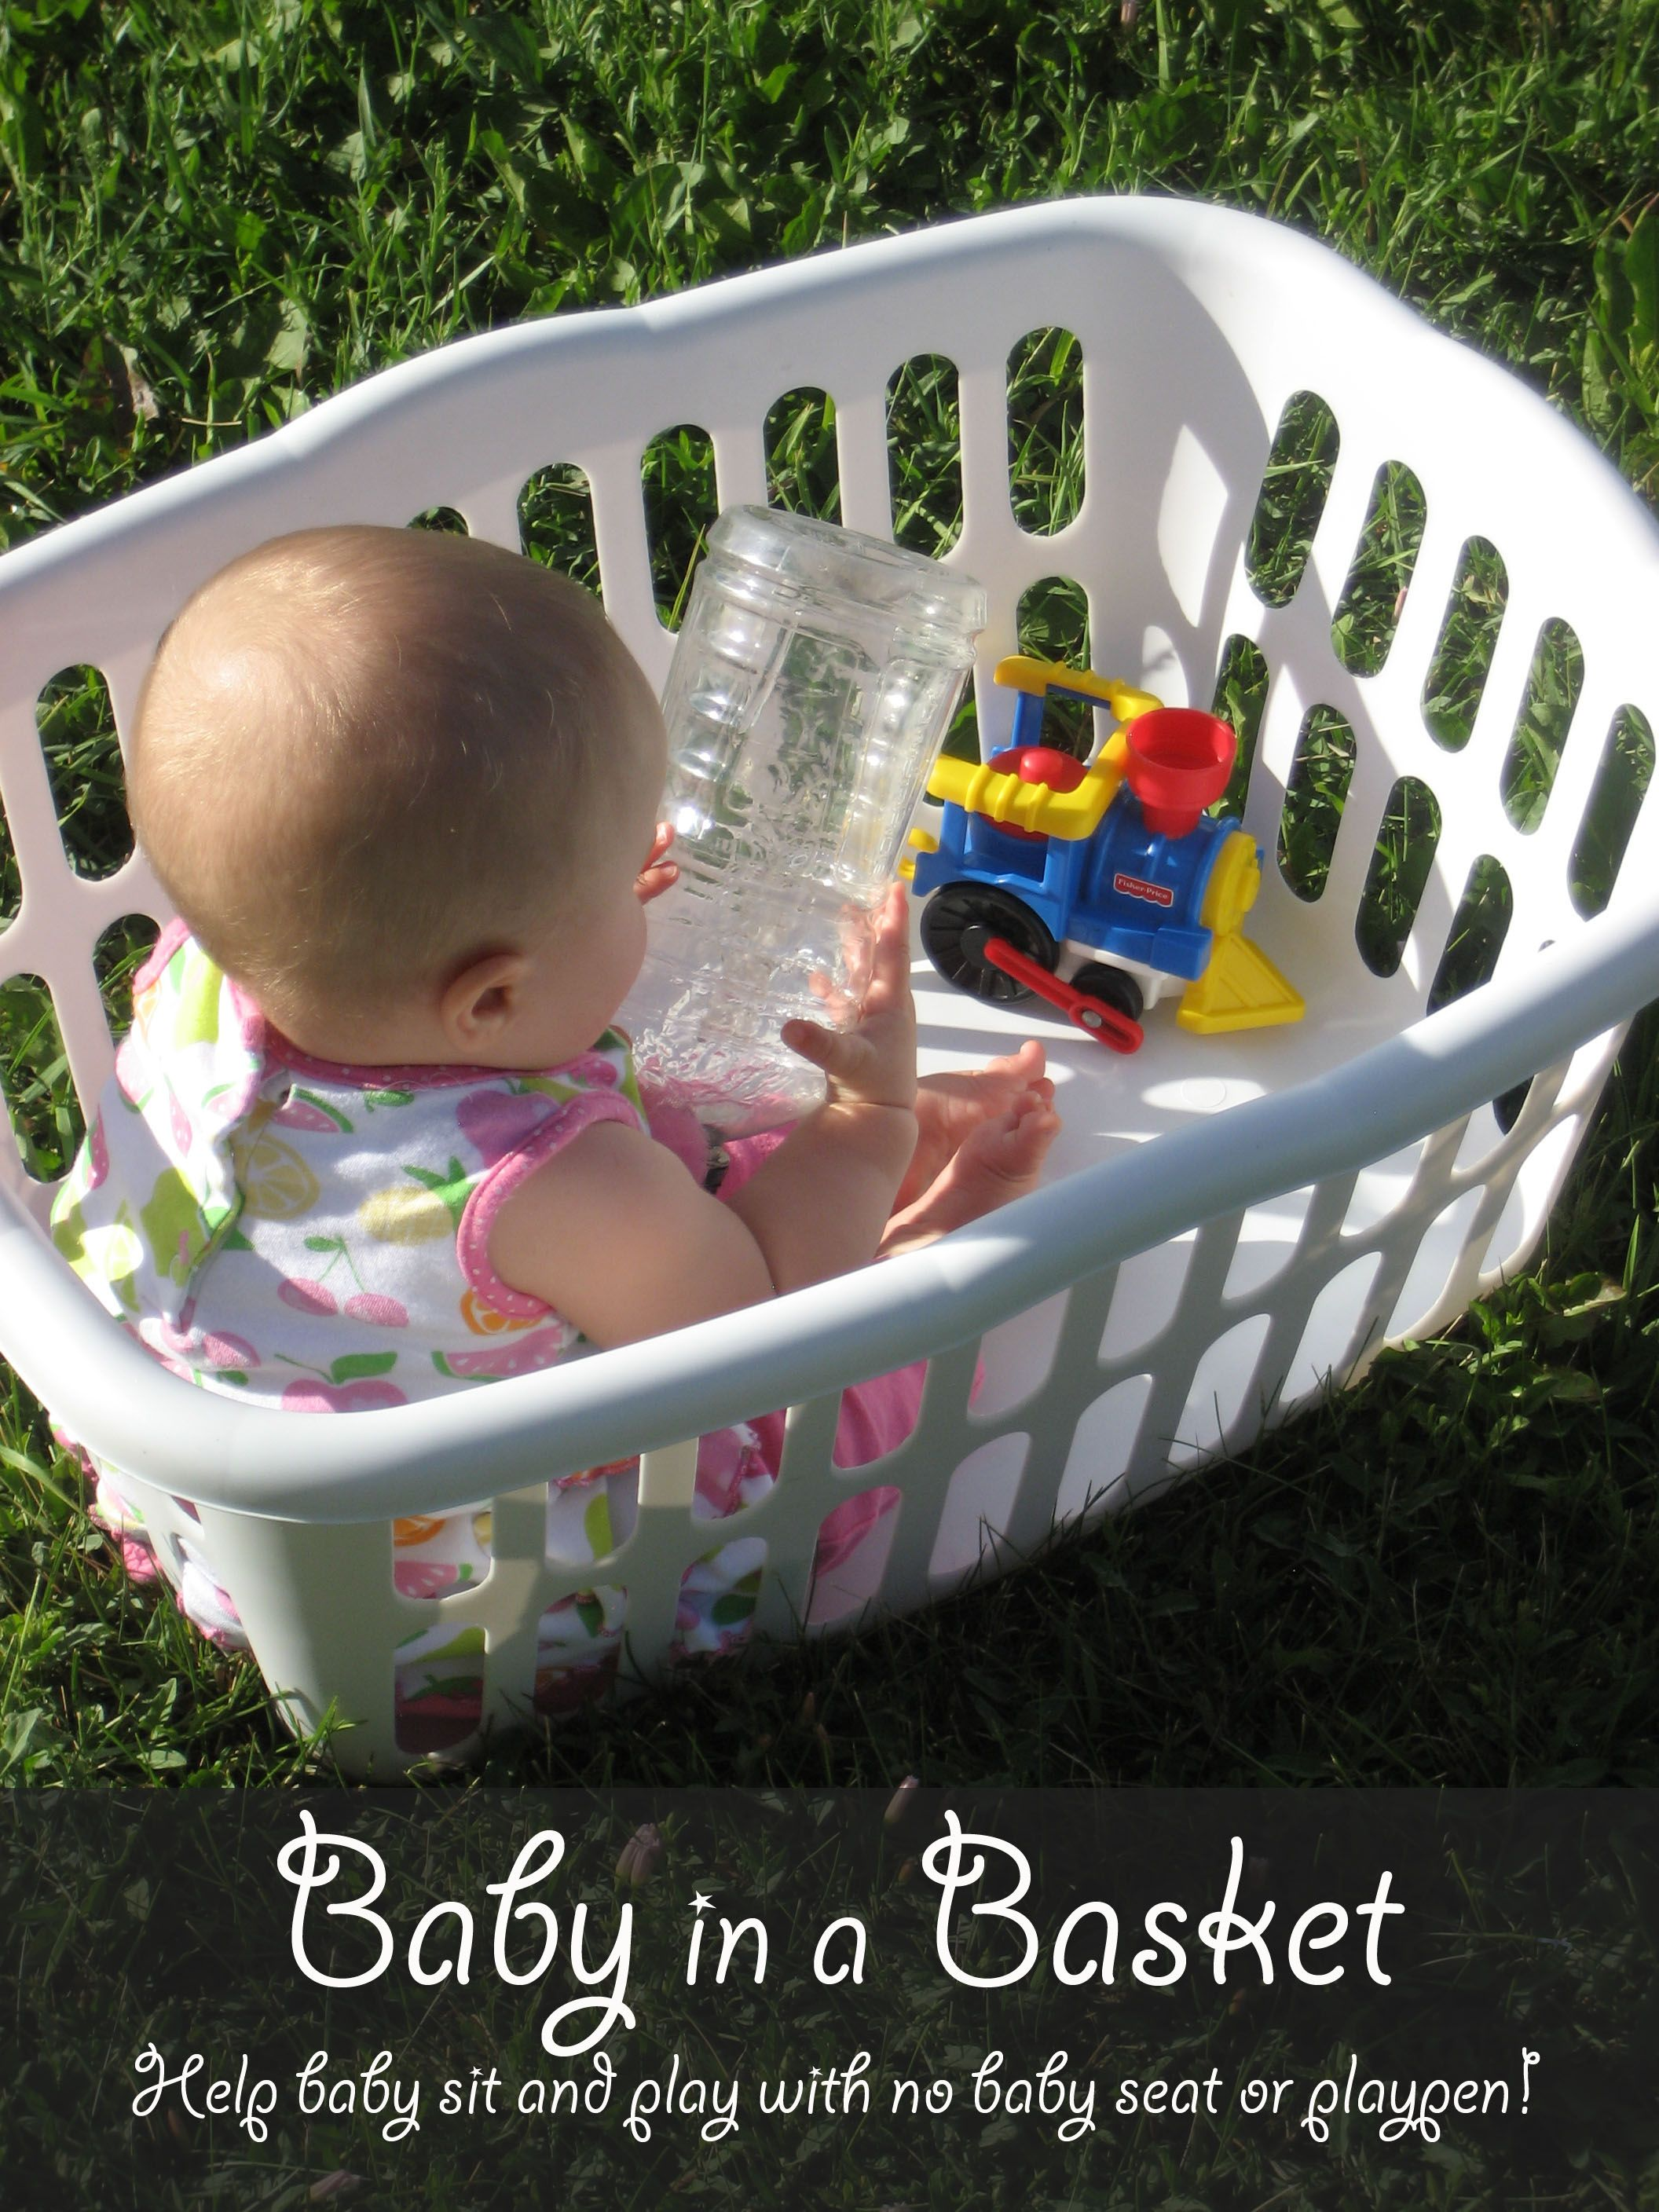 How To Help A Baby Sit Up And Play Without An Infant Seat